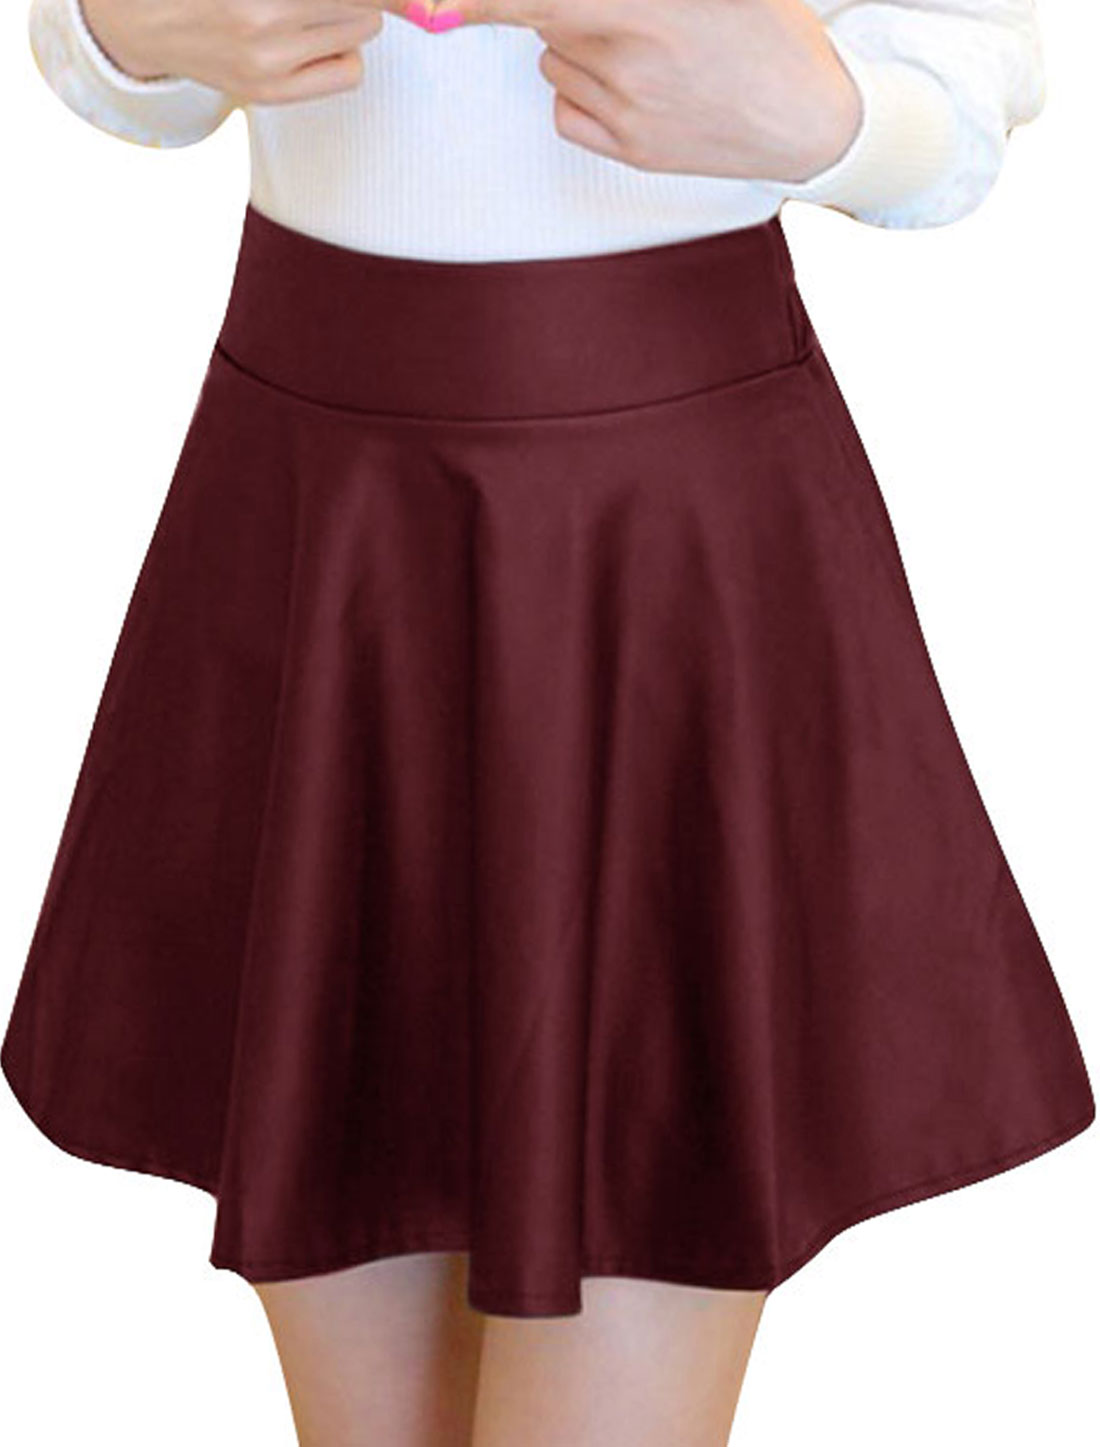 Ladies Elastic Waist Mid Rise Korean Style Winter Skirt Burgundy XS